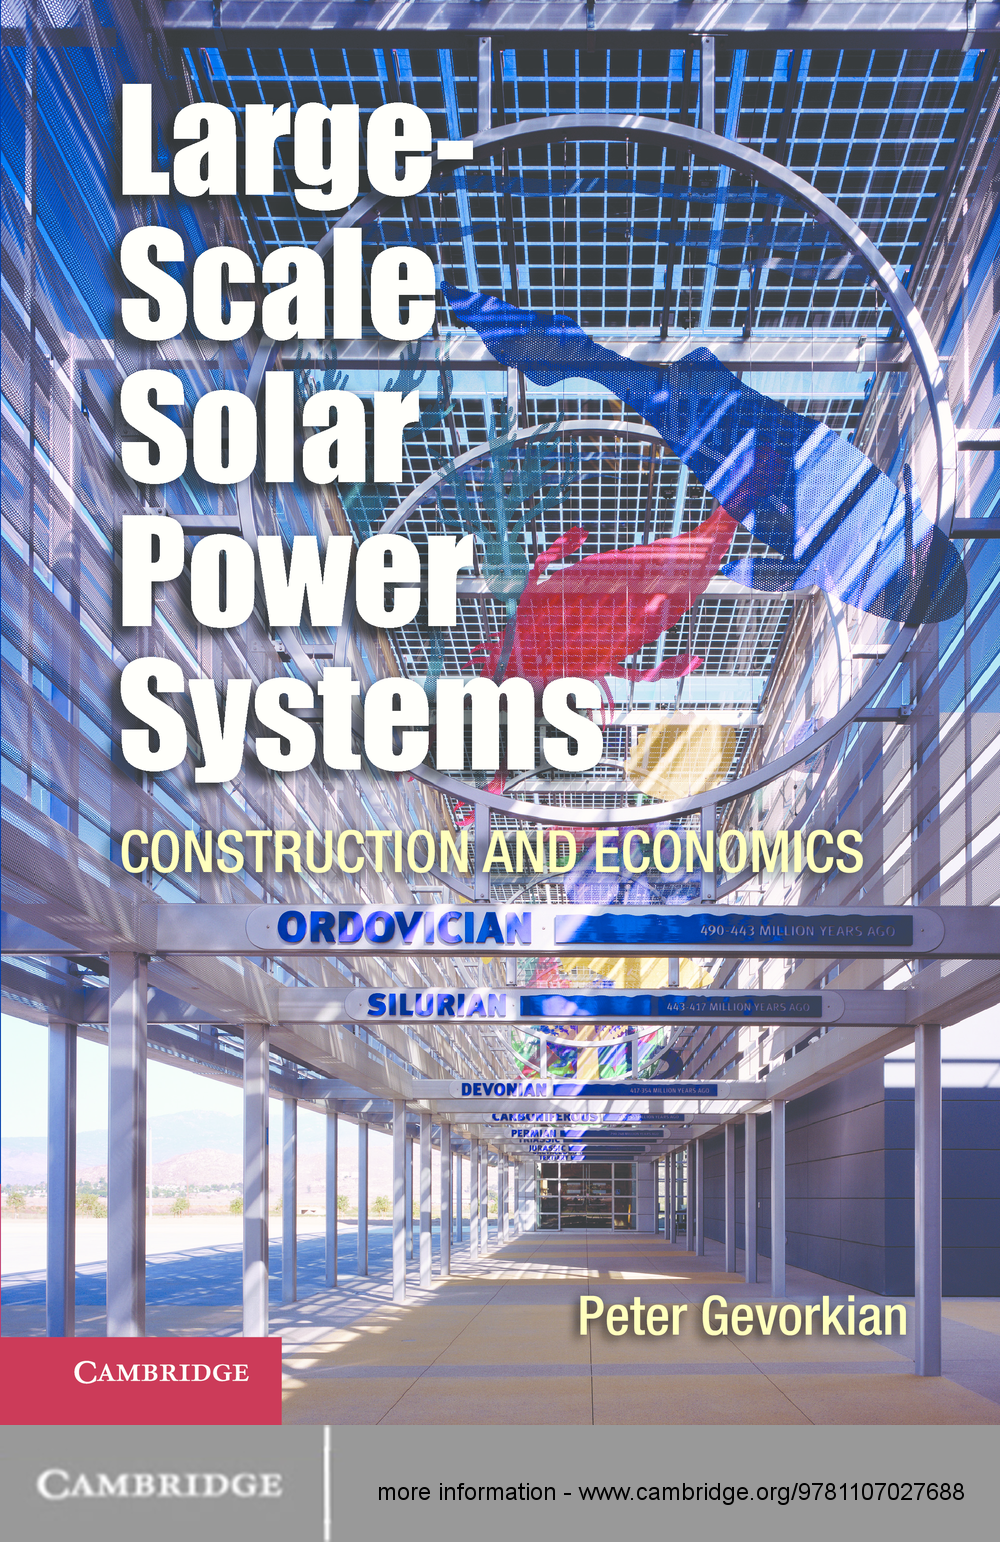 Large-Scale Solar Power Systems Construction and Economics